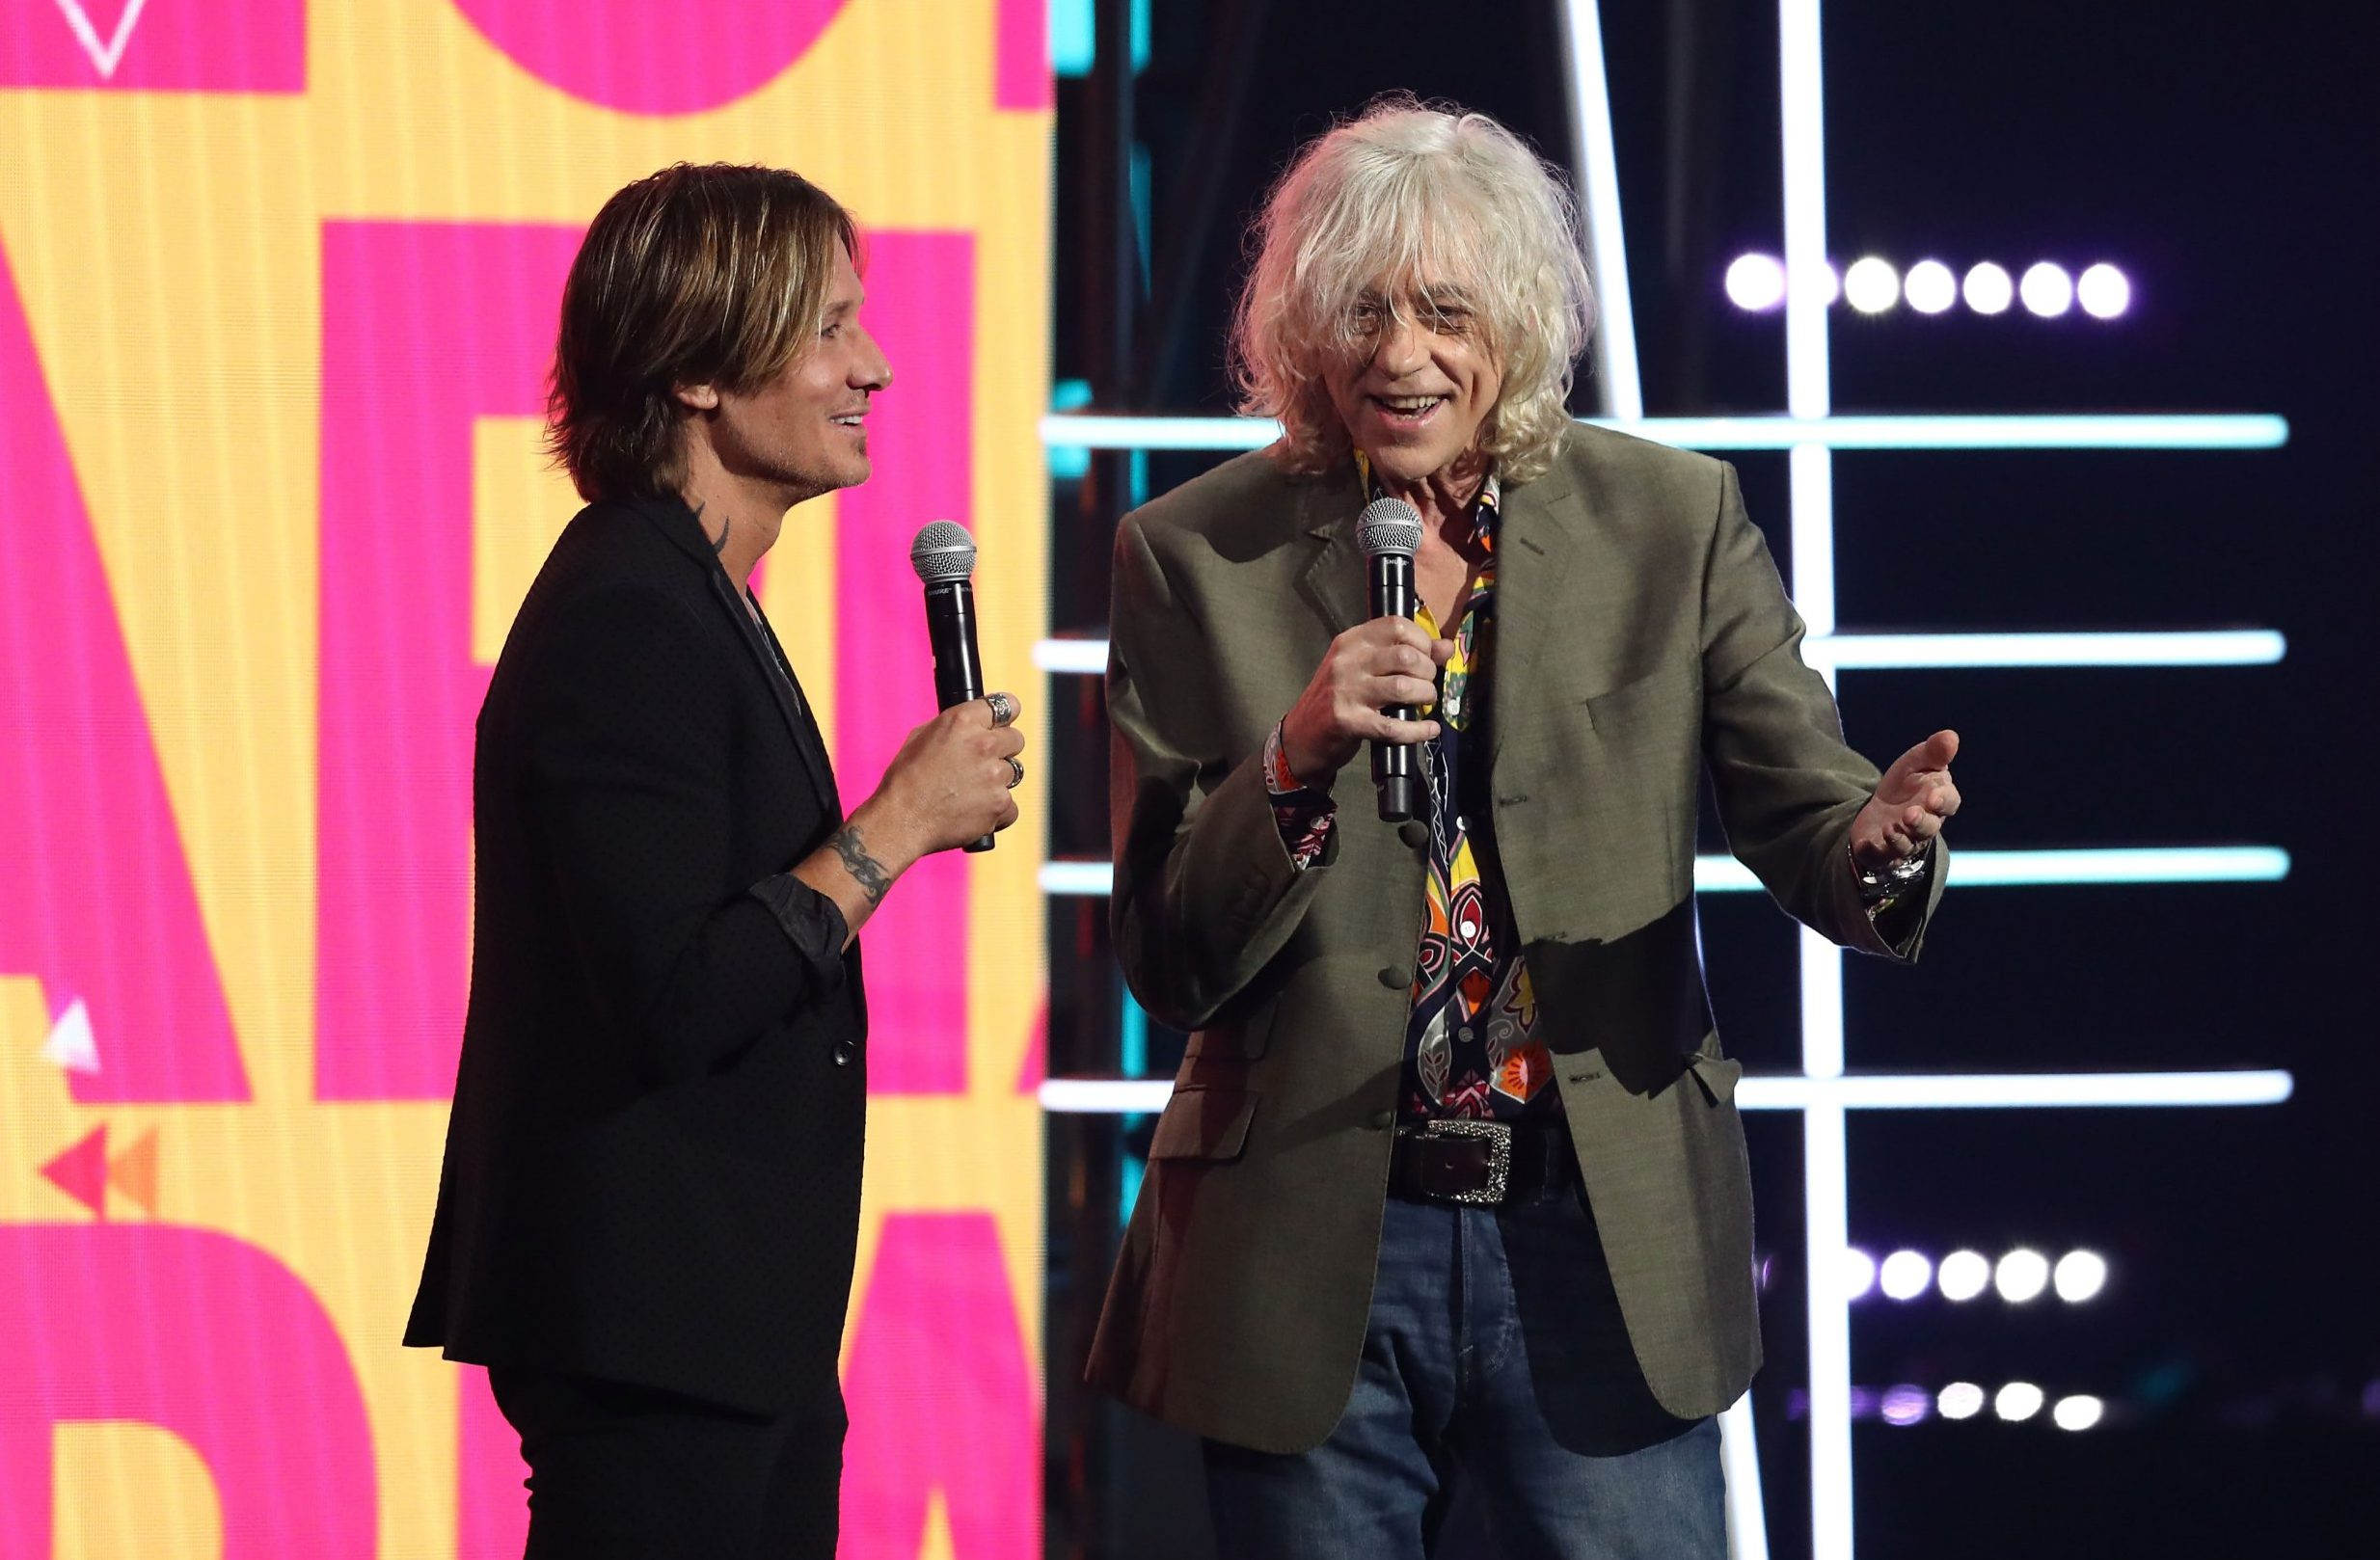 SYDNEY, AUSTRALIA - NOVEMBER 28: Keith Urban and Sir Bob Geldof during the 32nd Annual ARIA Awards 2018 at The Star on November 28, 2018 in Sydney, Australia. (Photo by Mark Metcalfe/Getty Images)